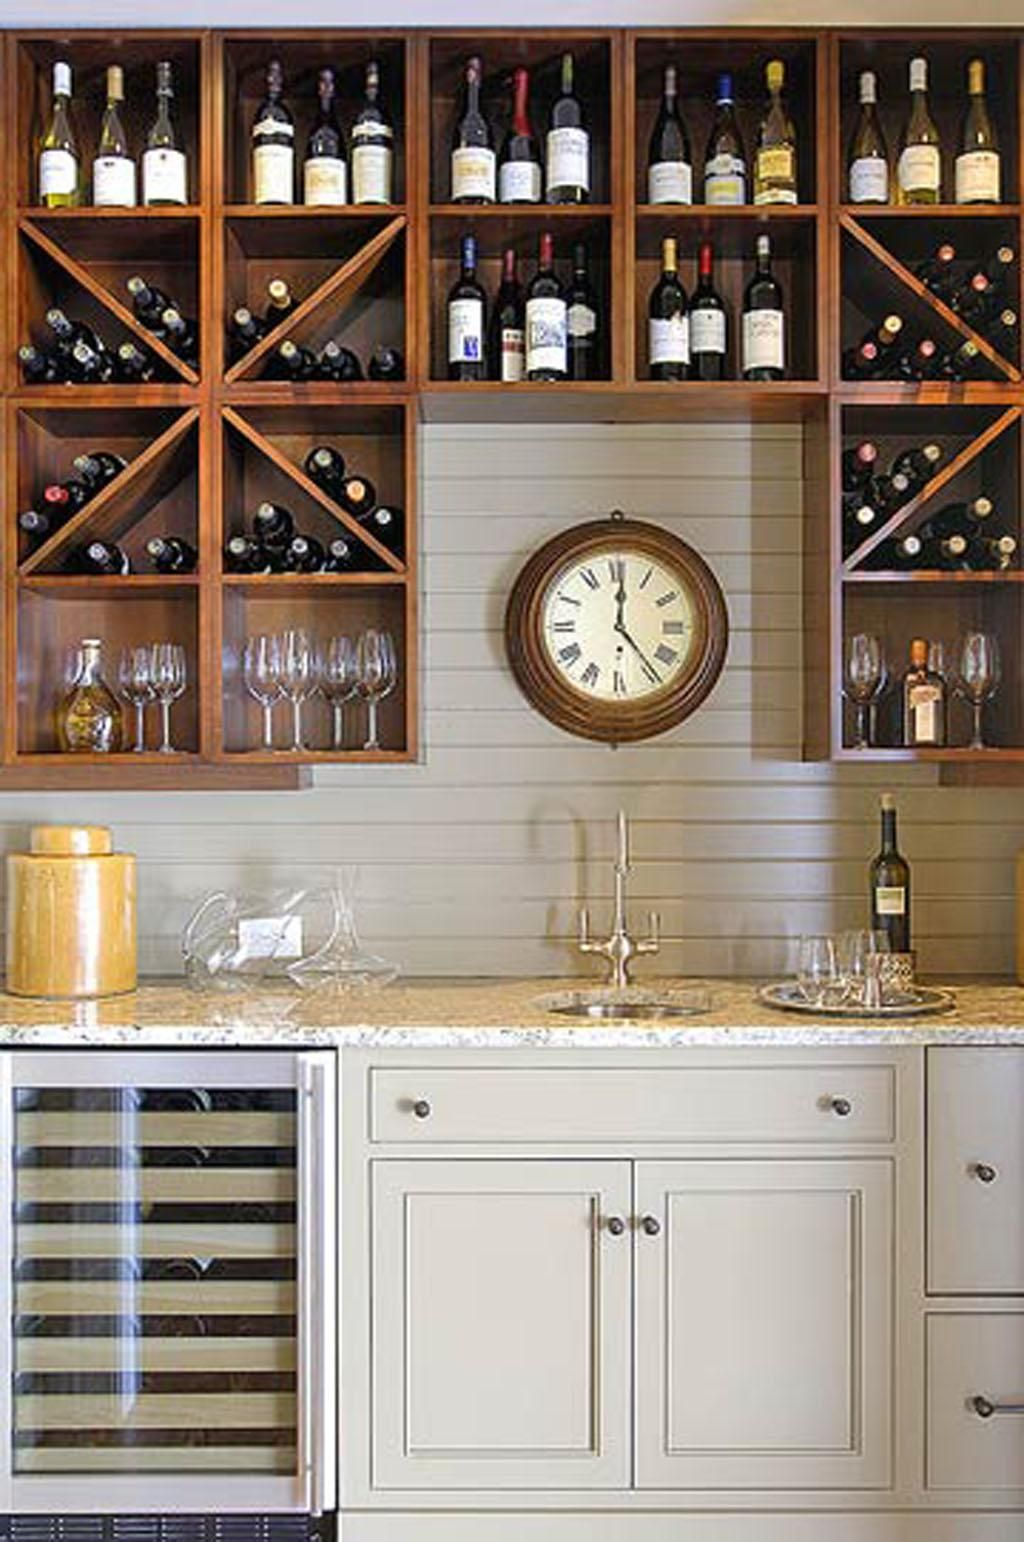 Design Bar Decorating Ideas wine bar decorating ideas home wet storage wine